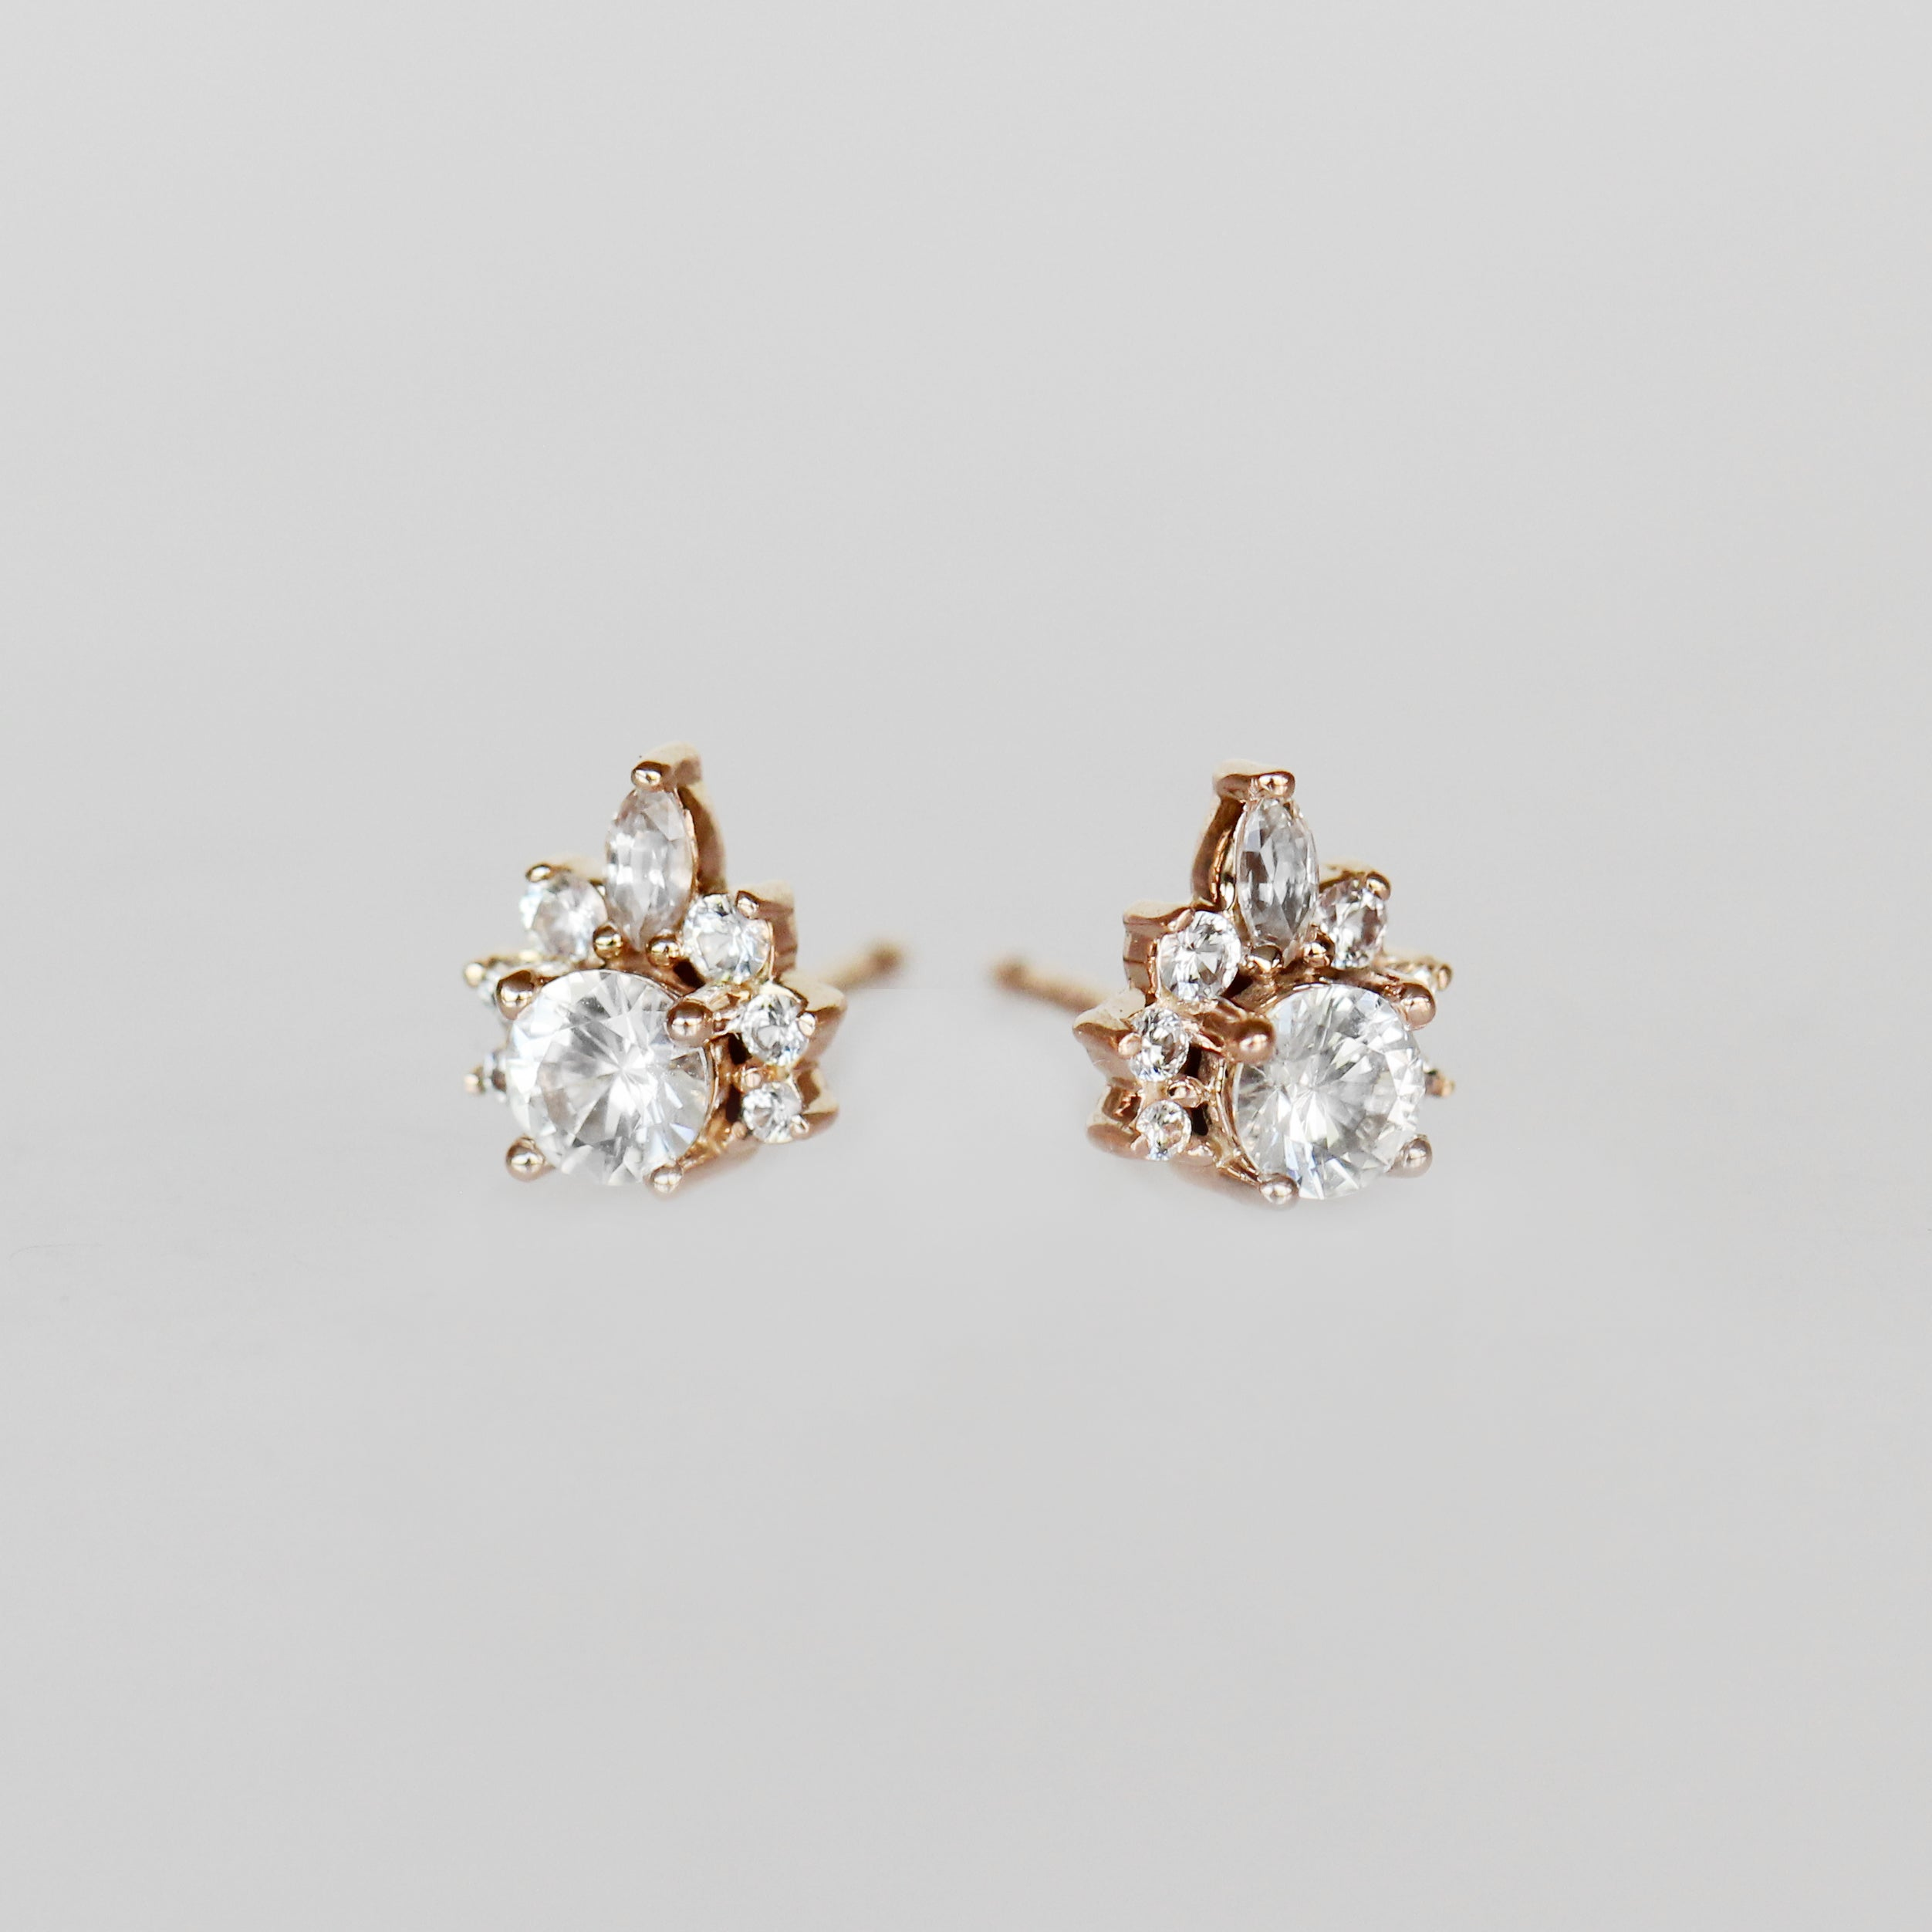 Zoe Earrings with White Sapphires- 14k Rose Gold- Ready to Ship - Celestial Diamonds ® by Midwinter Co.